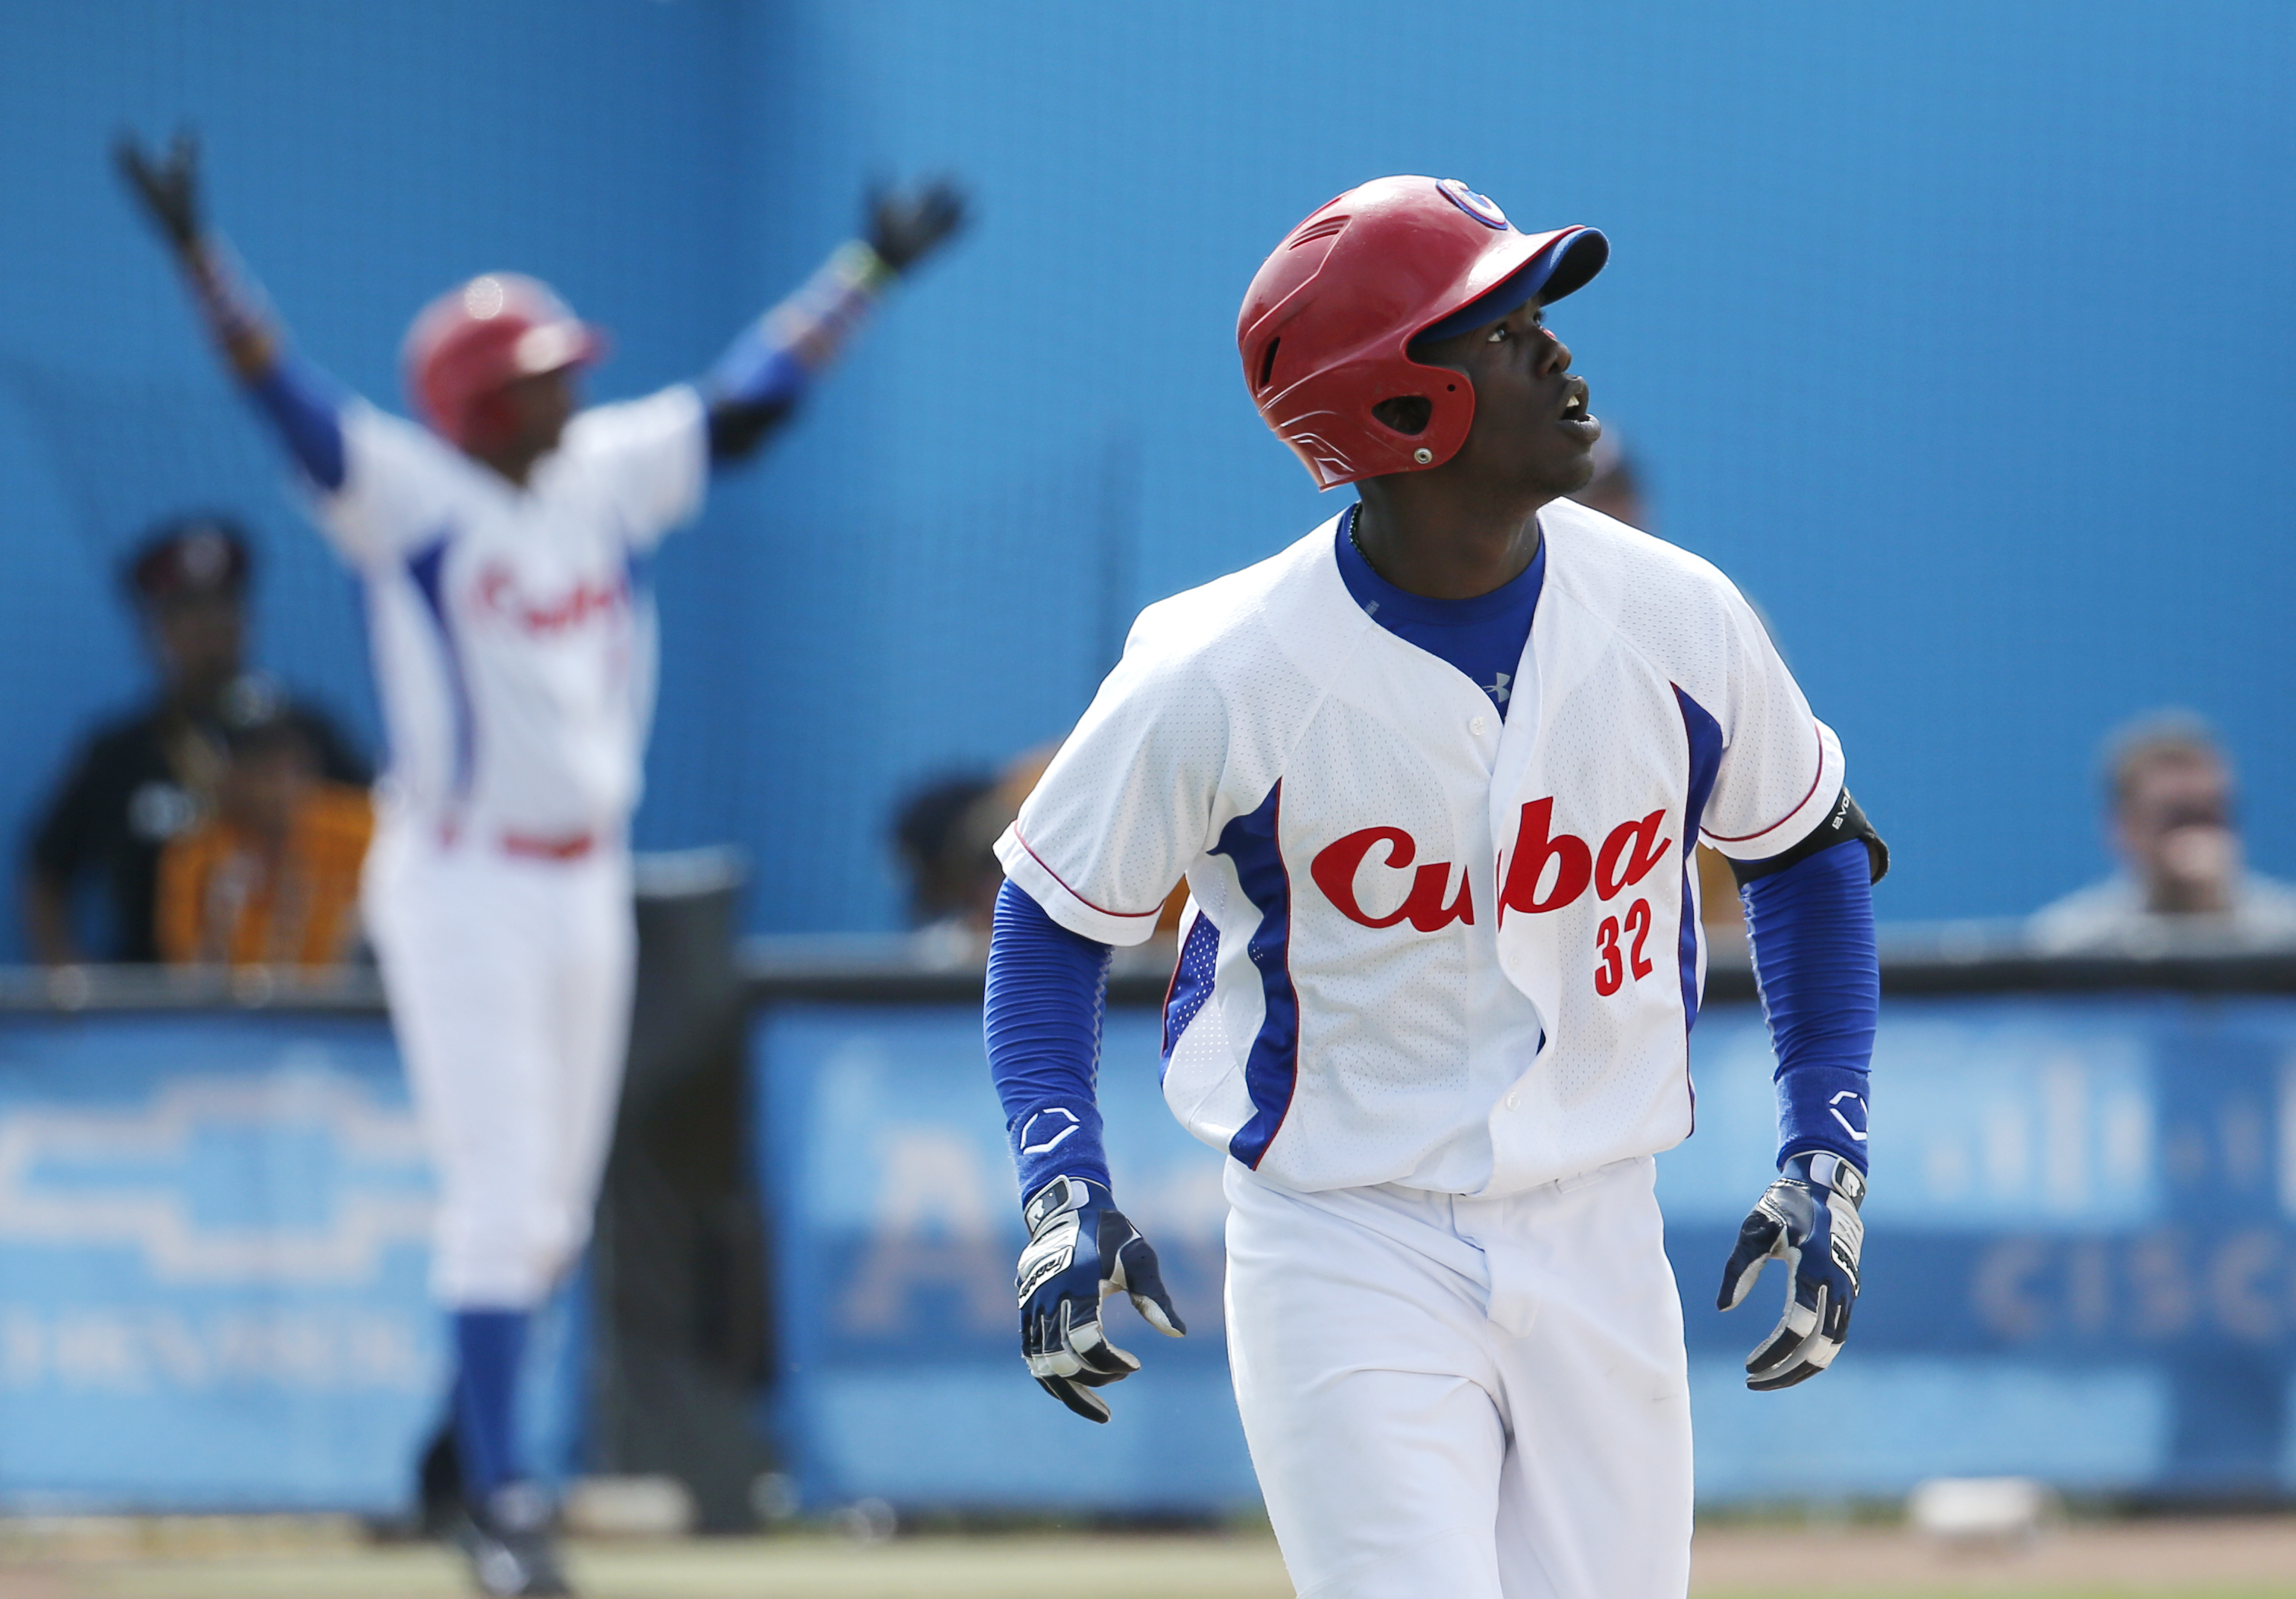 Cuba's Jose Garcia watches his ball while hitting a walk off home run off Puerto Rico pitcher Raul Rivera in the ninth inning of the bronze medal baseball game at the Pan Am Games, Sunday, July 19, 2015, in Ajax, Ontario. Cuba won 7-6. (AP Photo/Julio Cor